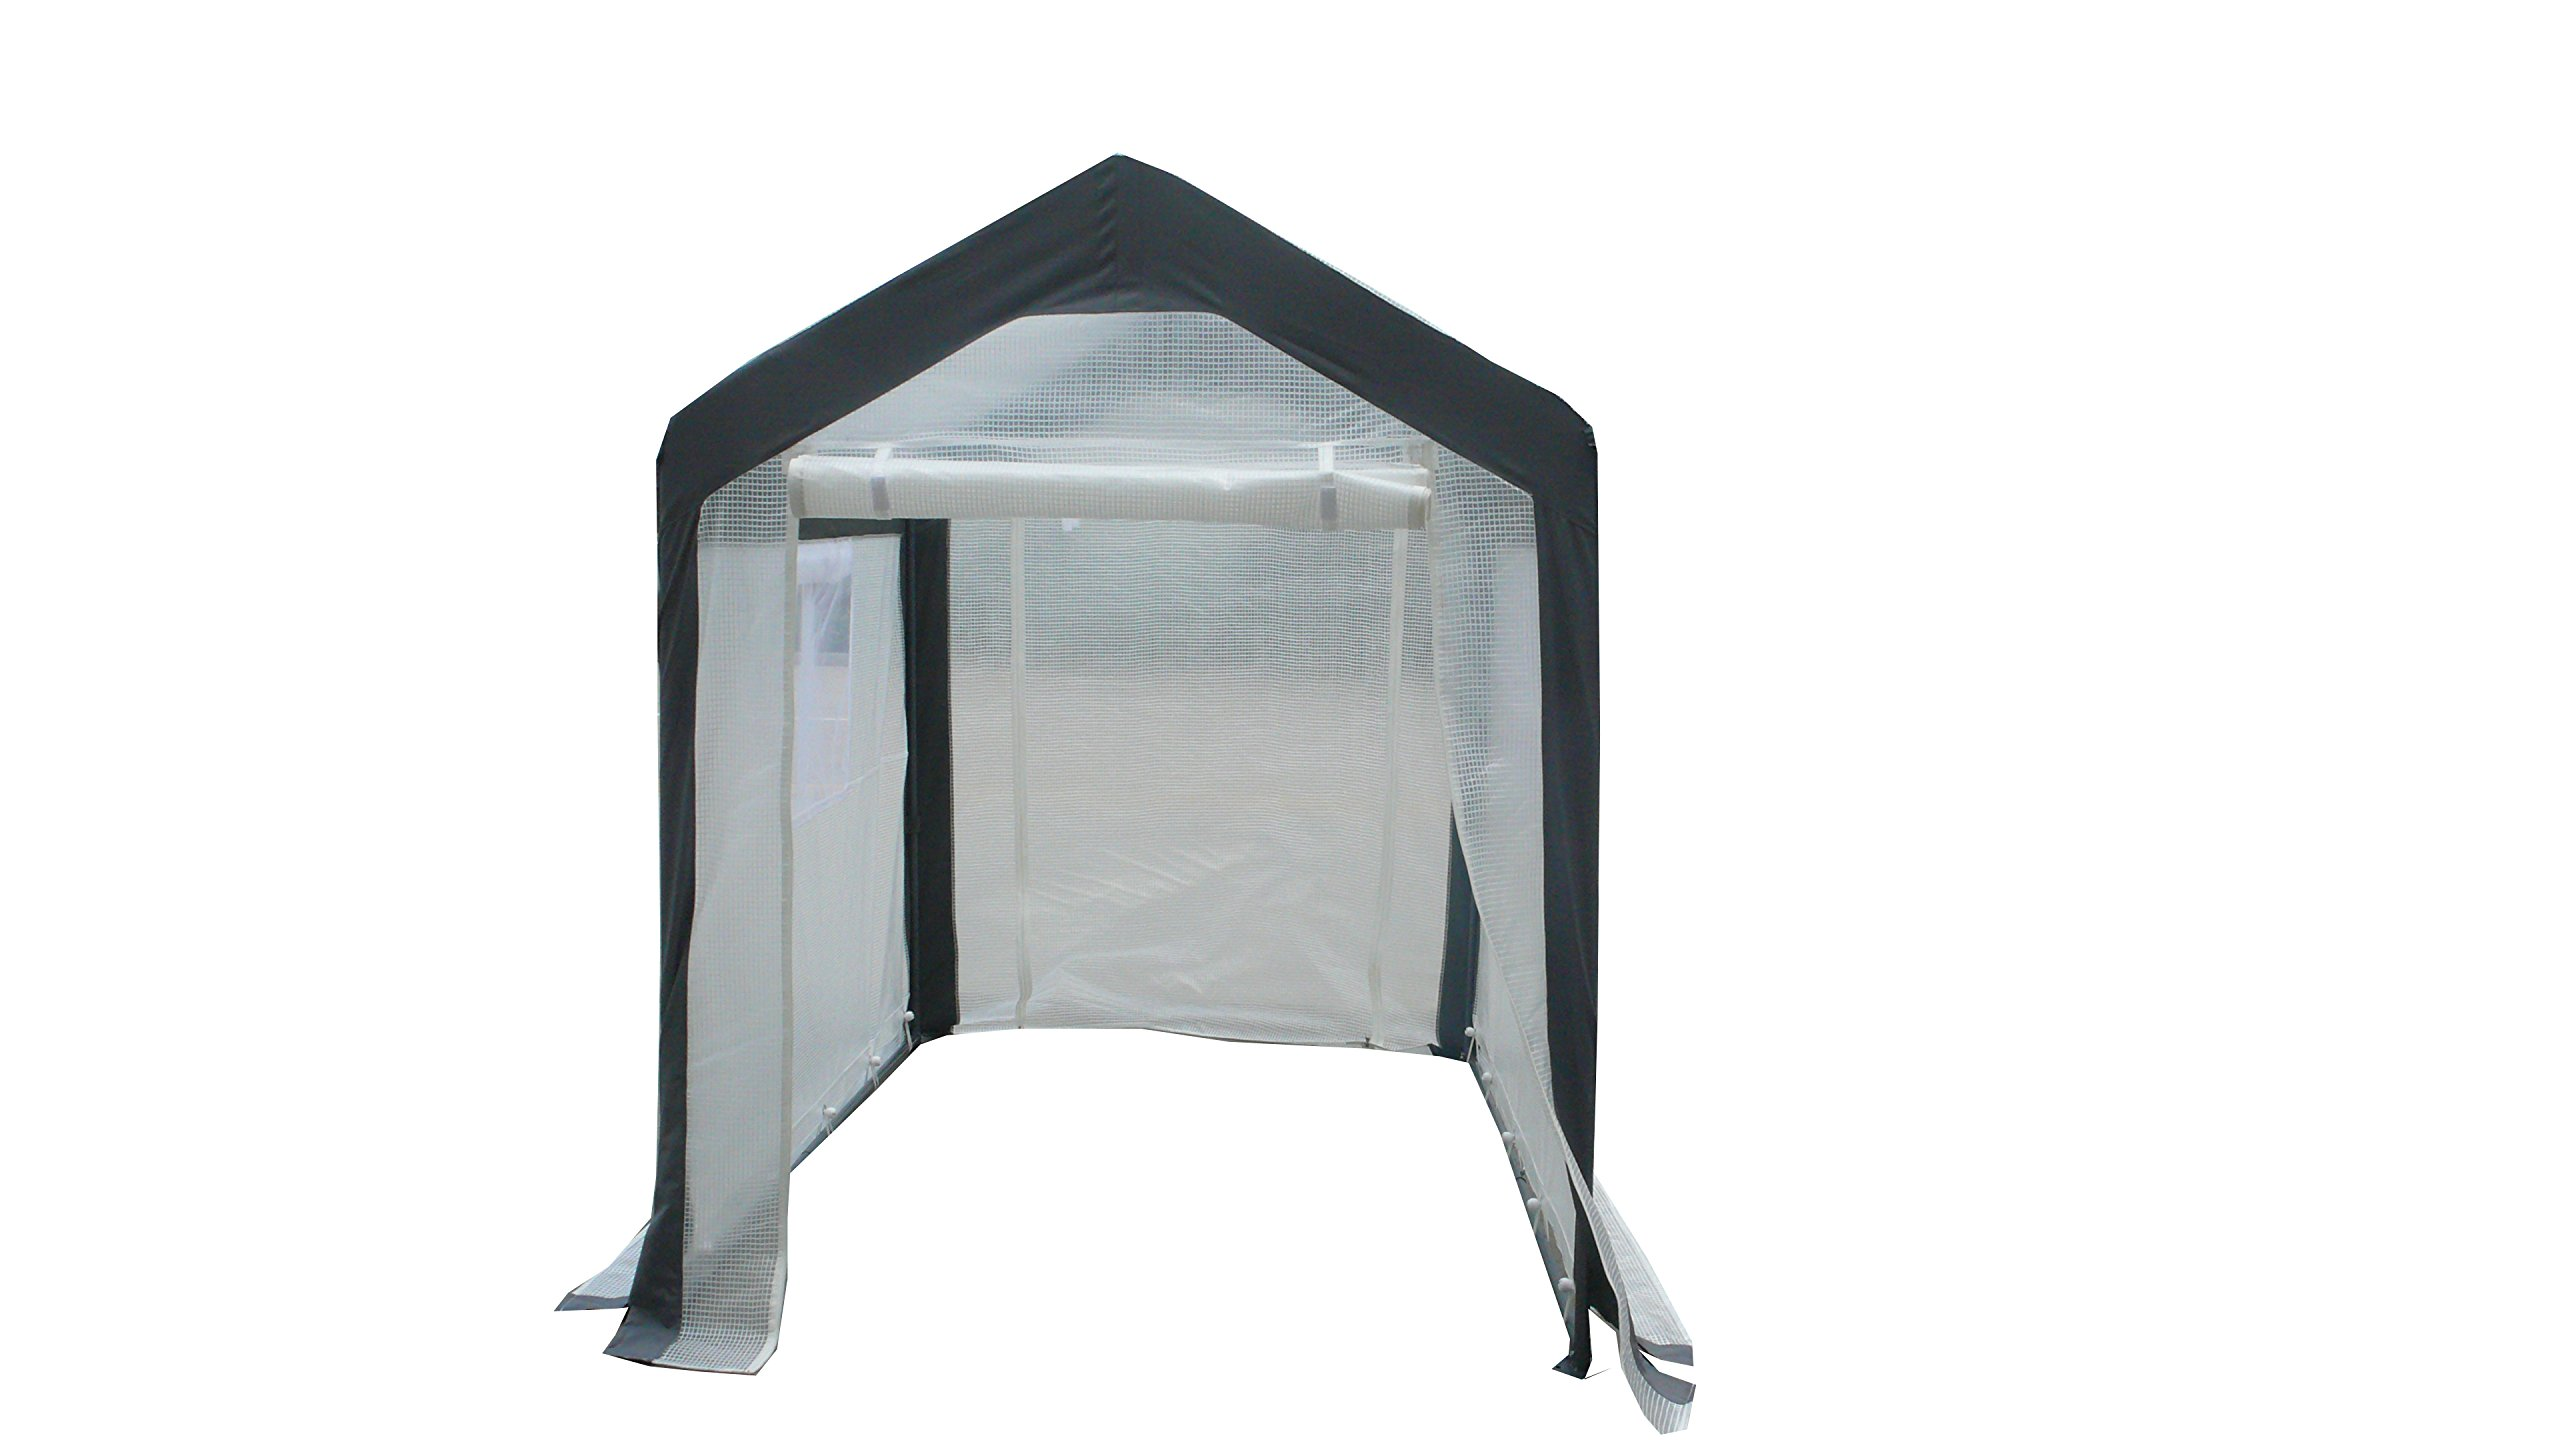 Greenhouse-Spring Gardener Peak Roof Walk In Portable Garden Hot House Fully Enclosed - Screend Windows for Ventilation, Zippered Door (5'W x 6'L x 6.6'H) Small Hobby Greenhouse for decks, patios, porches, backyards